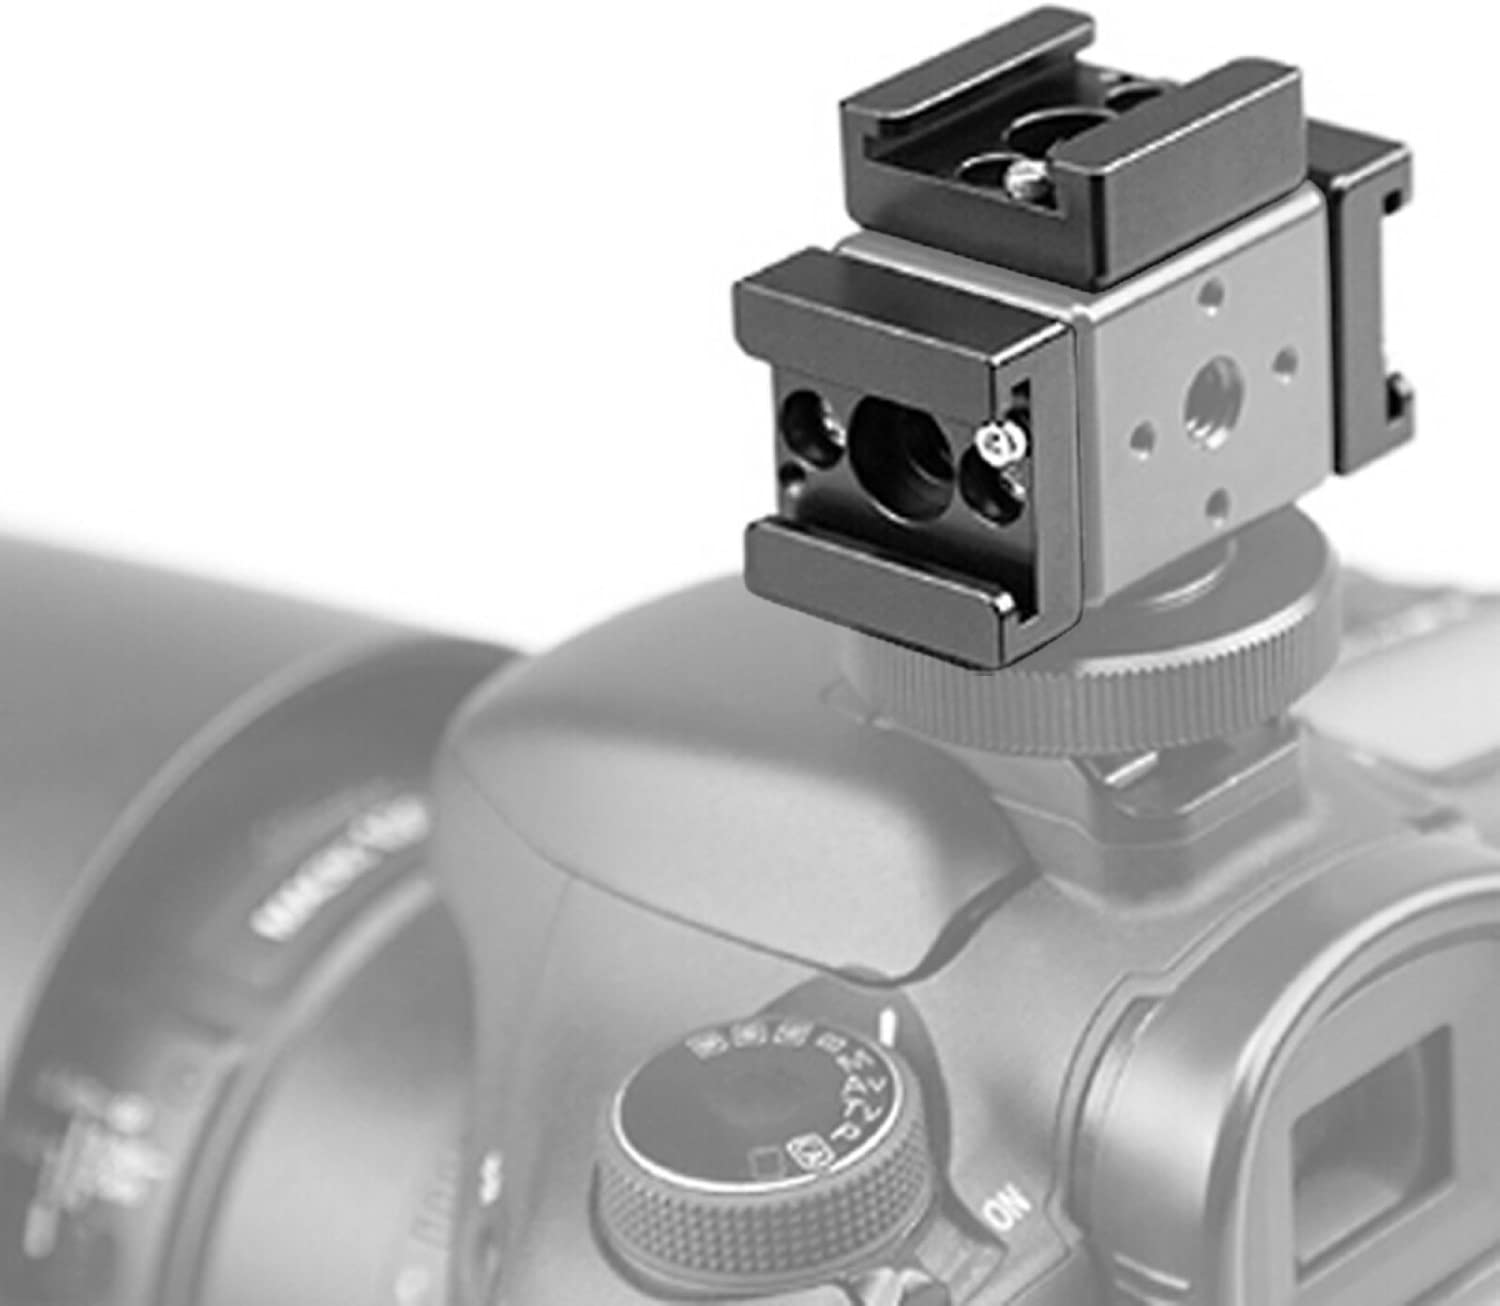 Cold Shoe Mount Adapter Cold Shoe Bracket Standard Shoe Type with 1//4 Thread Hole for Camera DSLR Flash Led Light Monitor Video and More